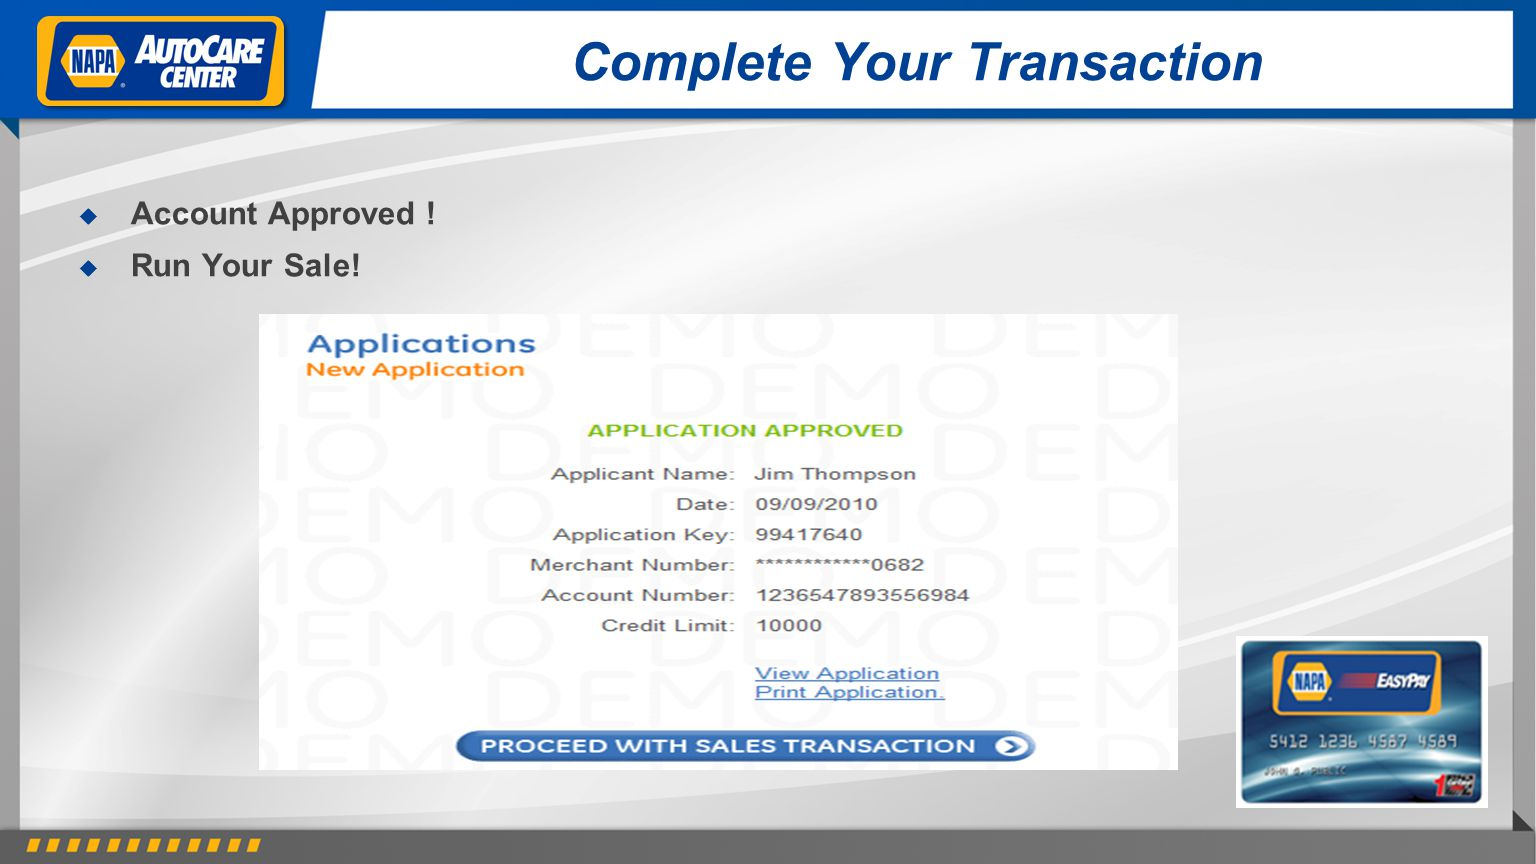 Complete Your Transaction